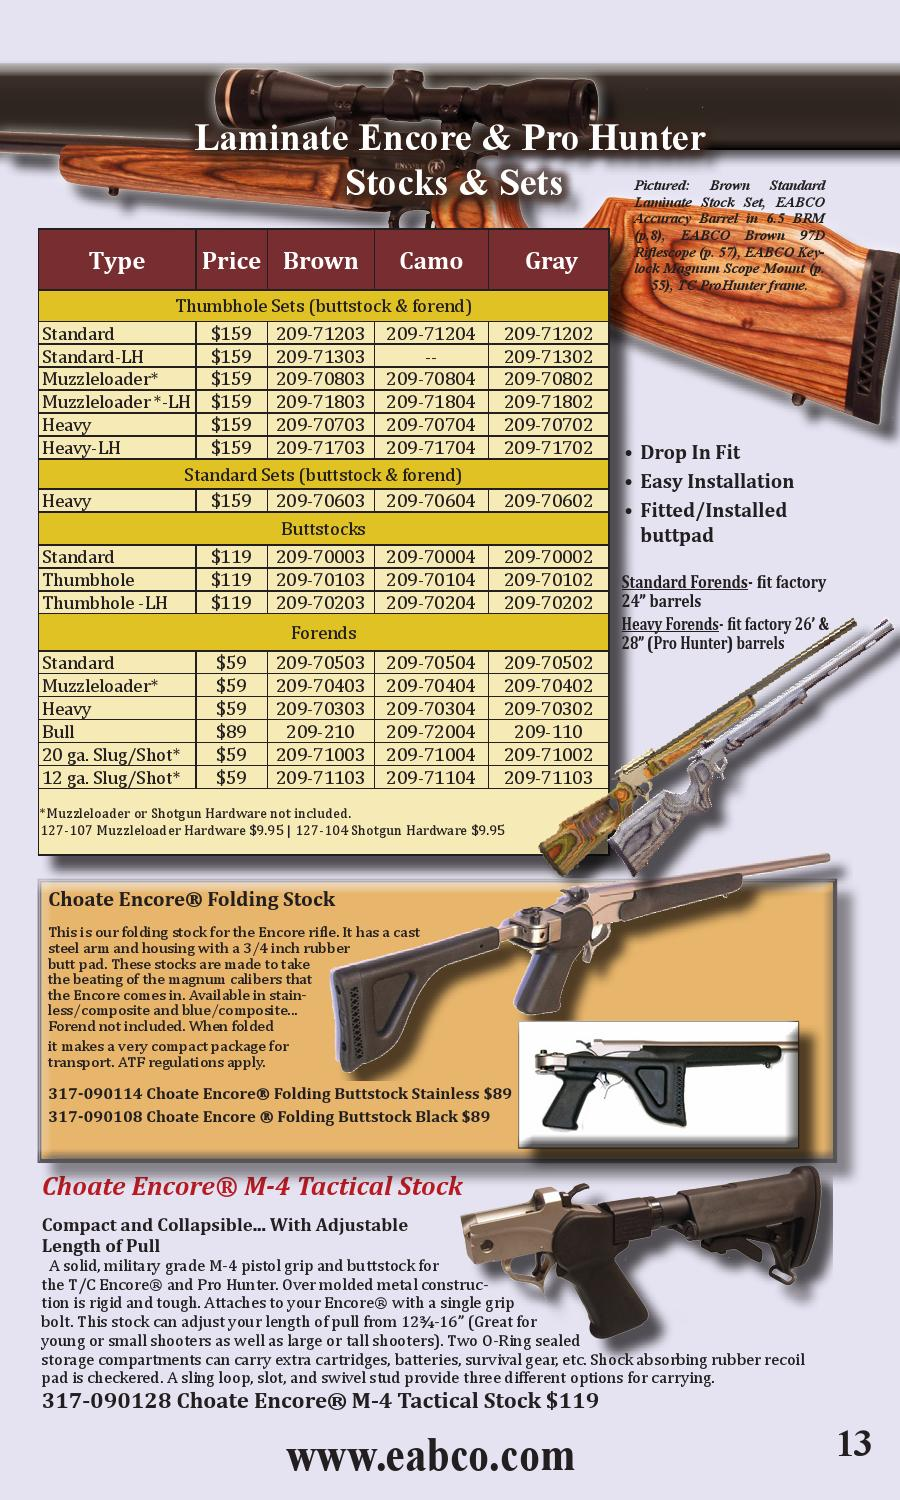 E  Arthur Brown Co, Inc  2013-2014 Hunting Catalog by E  Arthur